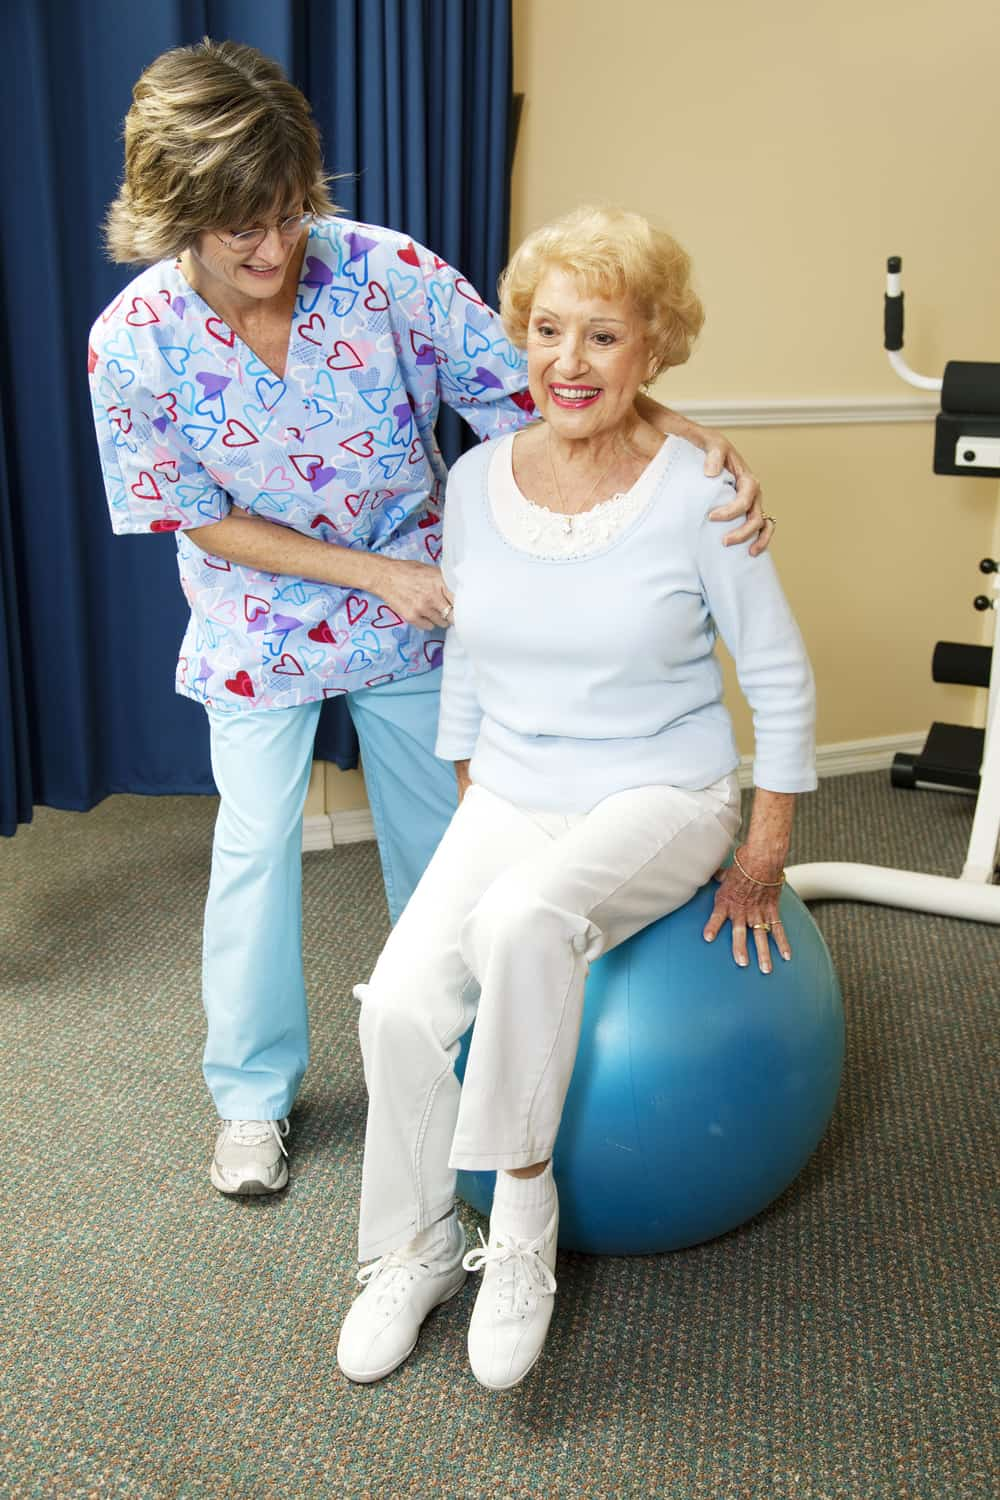 Physical therapy for the elderly adult day care daycare senior entertainment Brooklyn Yew York City